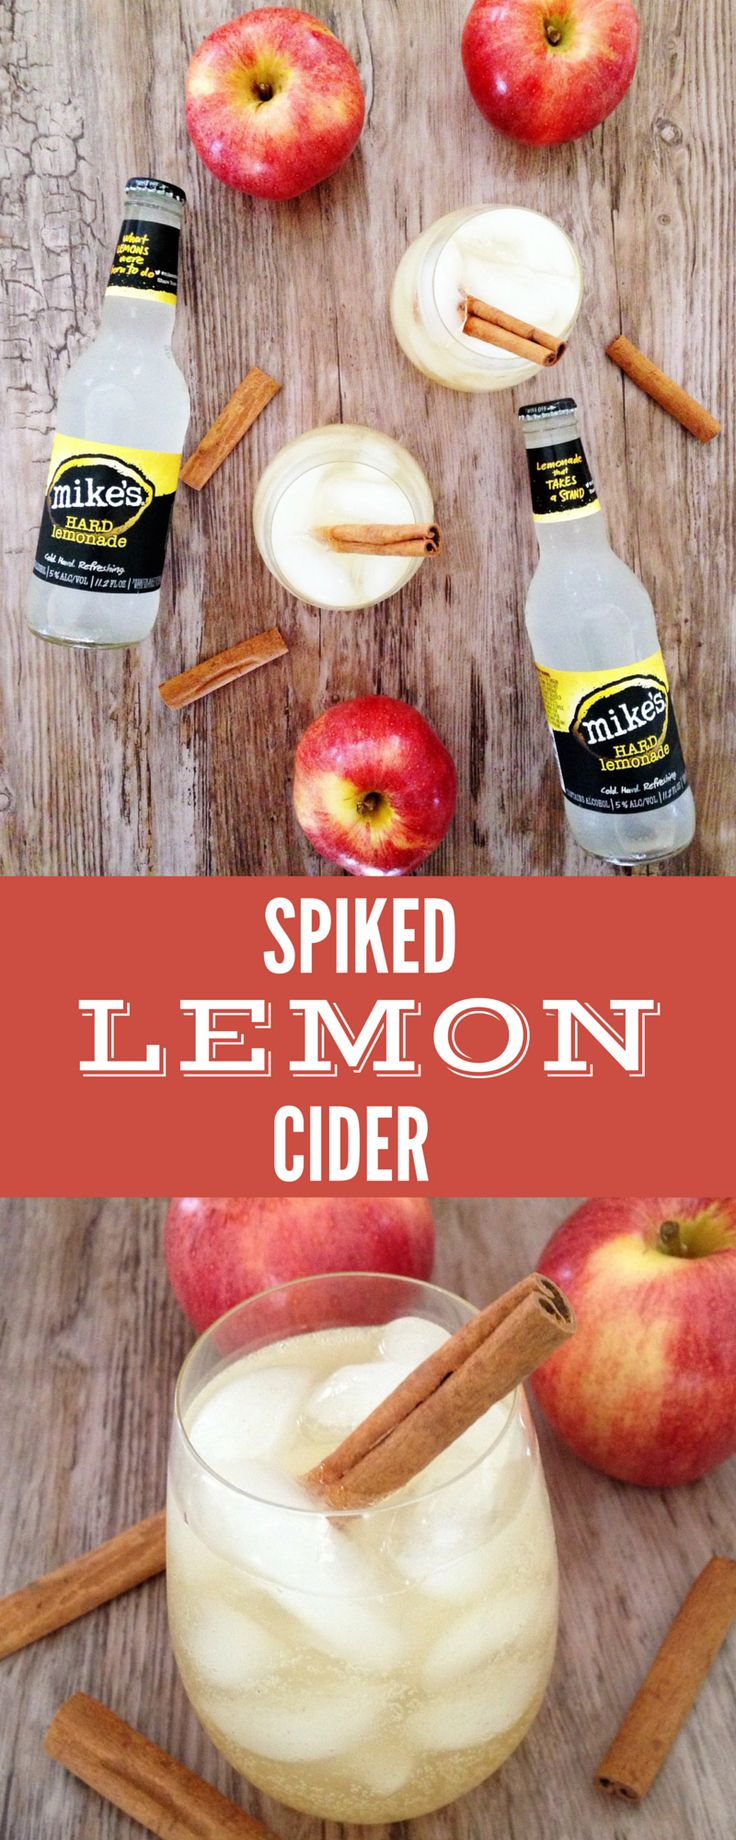 Spiked Lemon Cider: The perfect fall drink! Light & lemony with a spiced cider kick! #MikesVIP